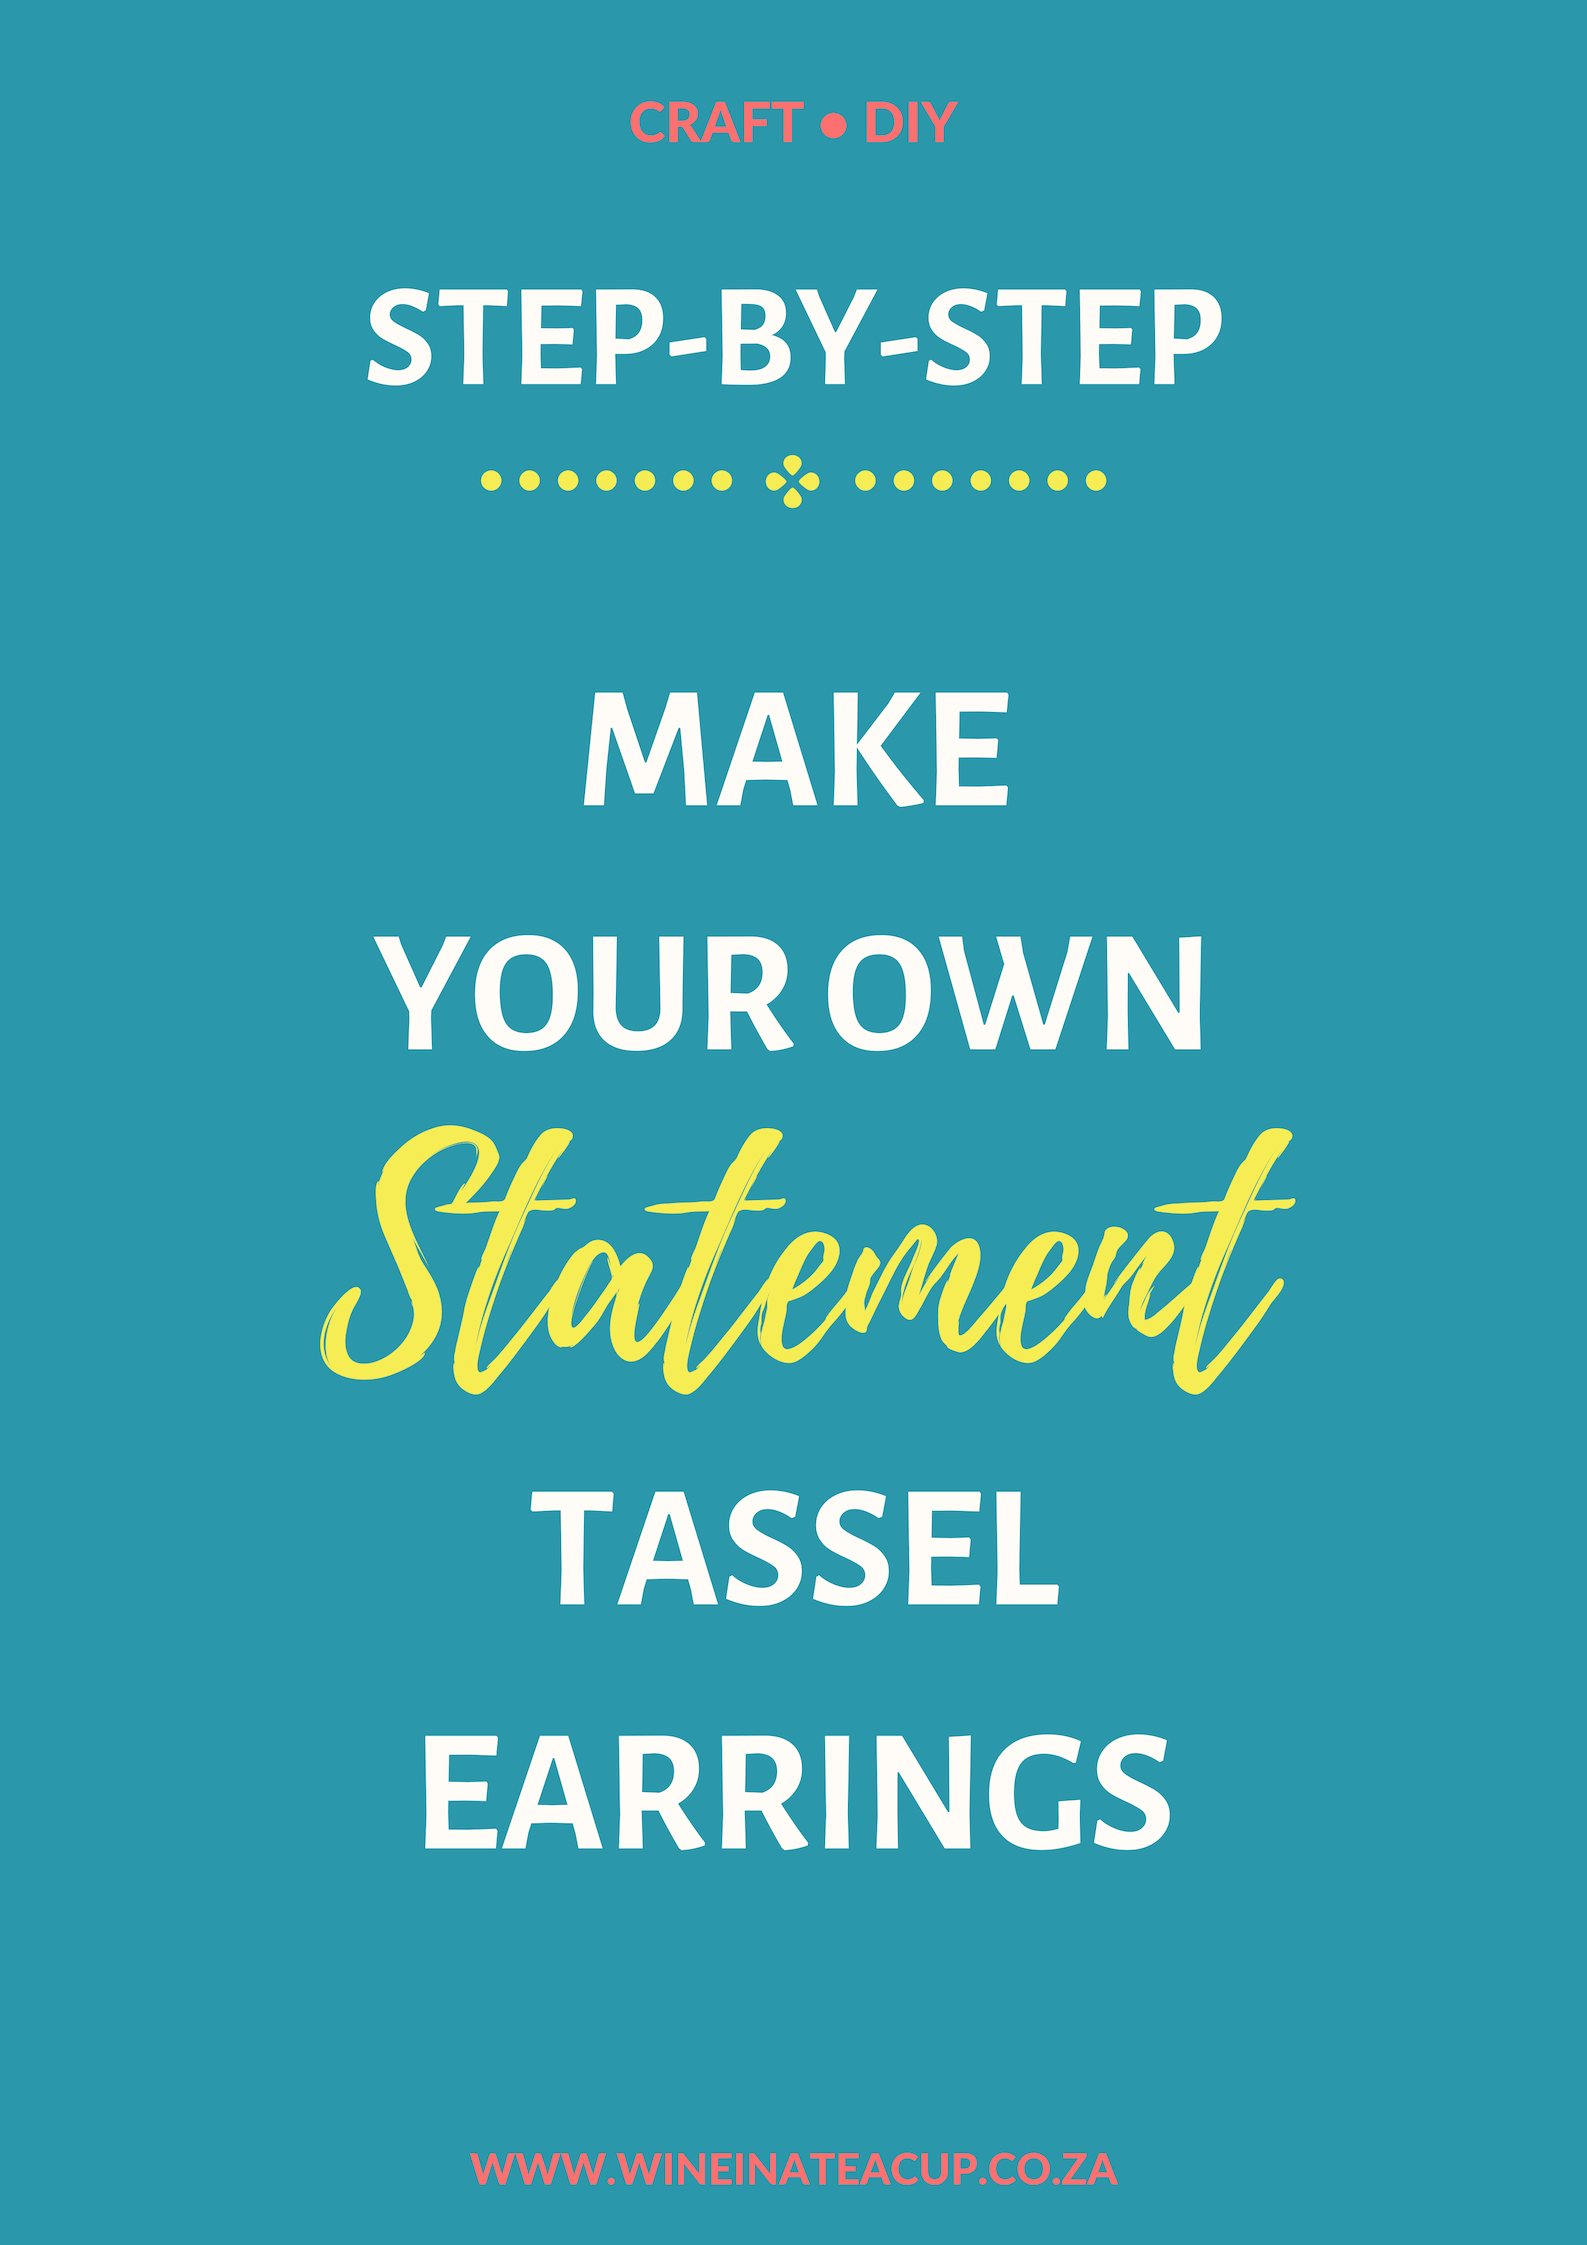 Step by Step instructions to make your own statement tassel earrings! #diy #statementearrings #diyjewelry